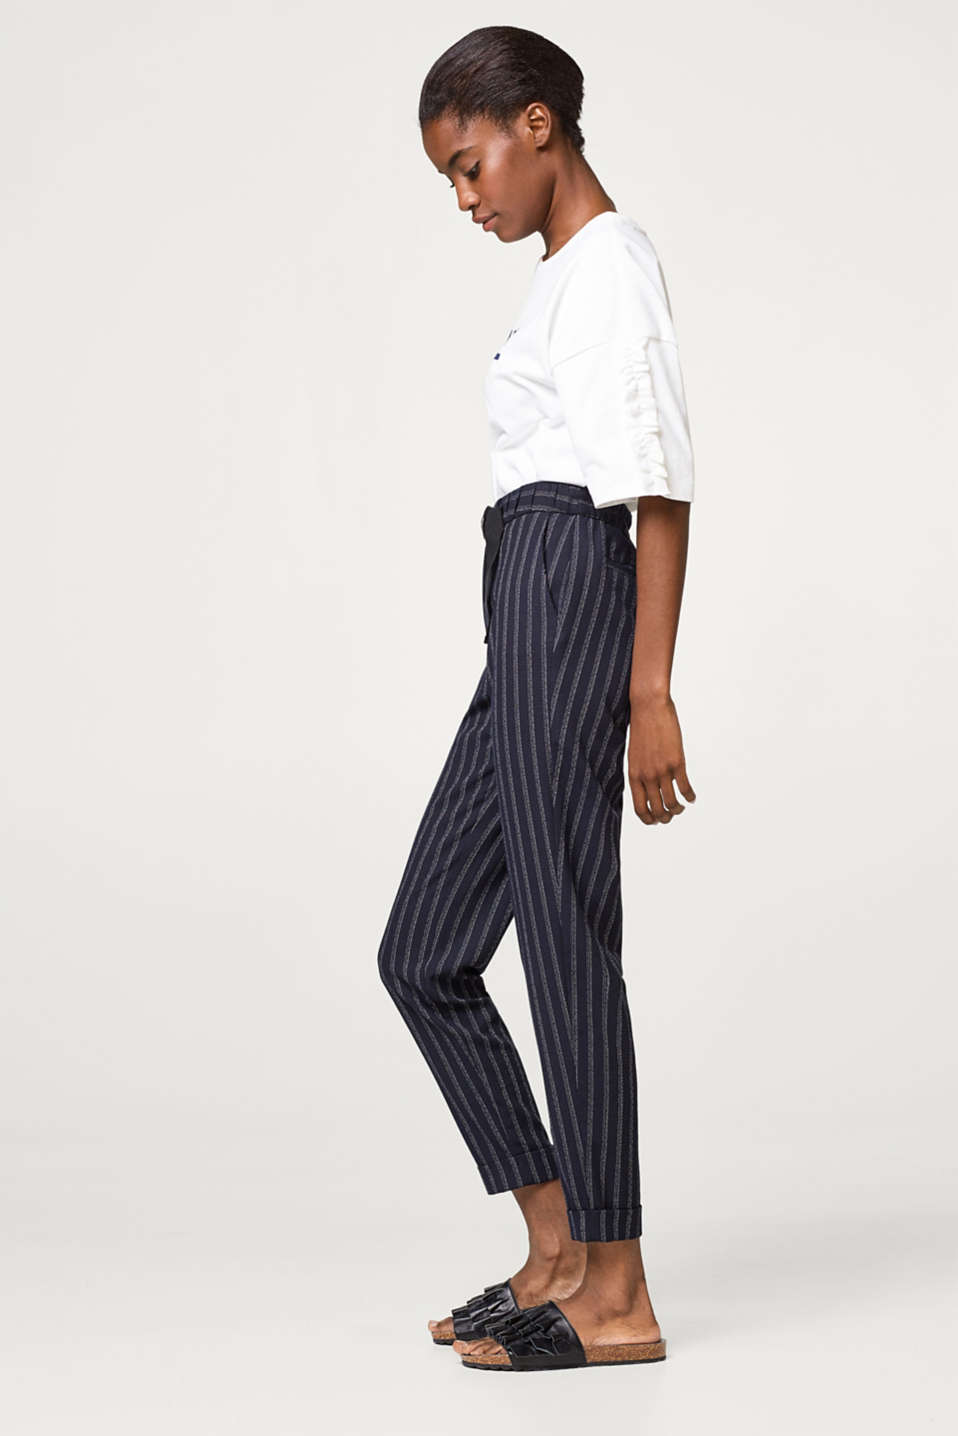 Esprit - Jogging bottoms with a grosgrain ribbon belt and chalk stripes